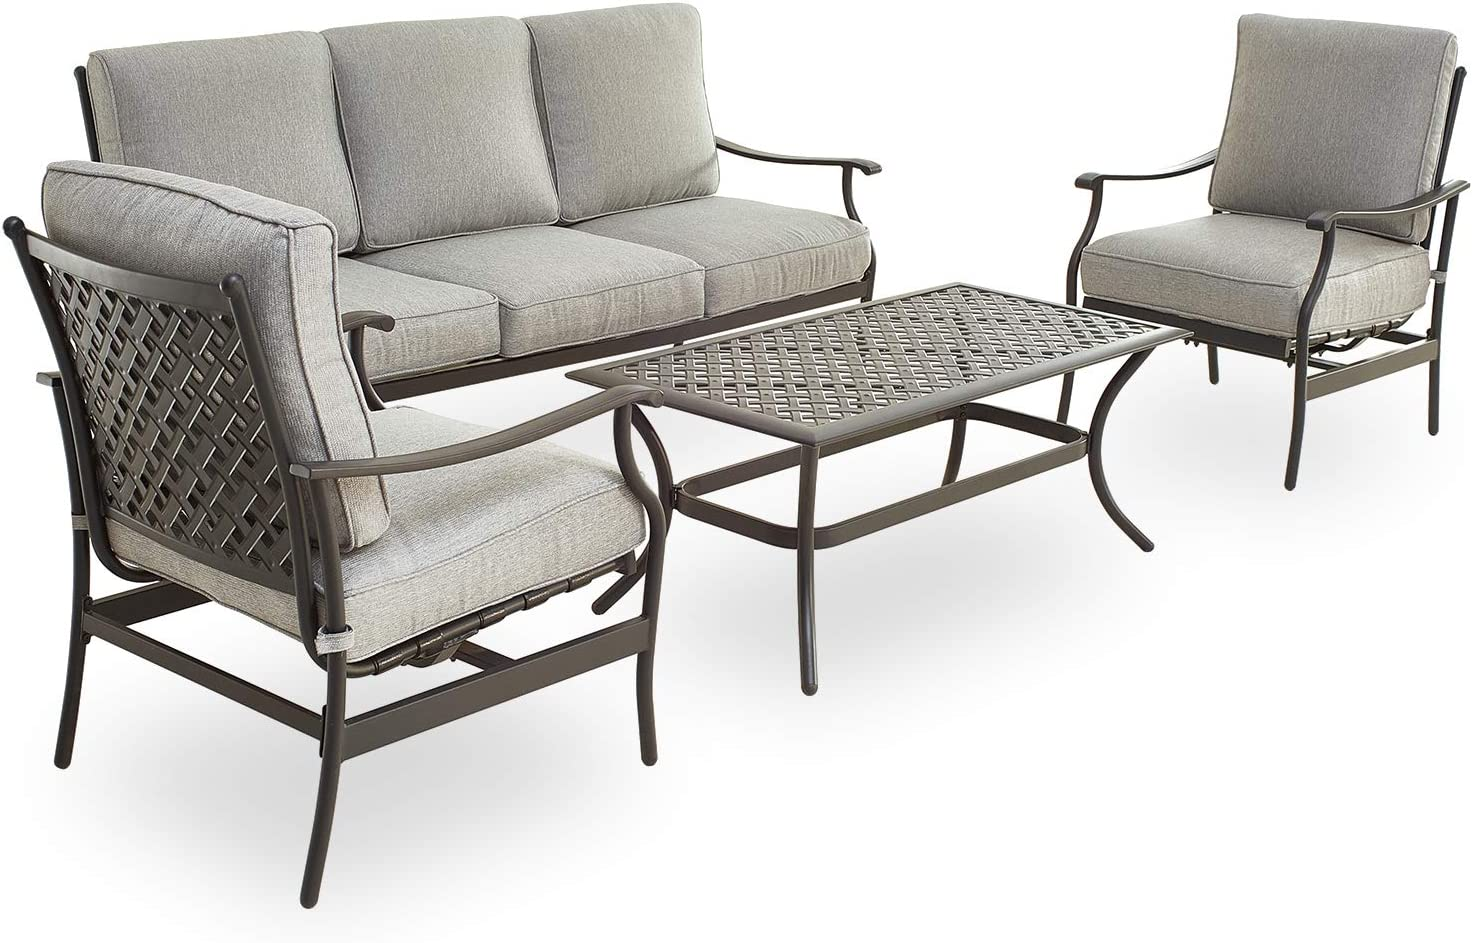 PatioFestival Patio Conversation Set 4 Pieces Cushioned Outdoor Furniture Sets with All Weather Steel Frame